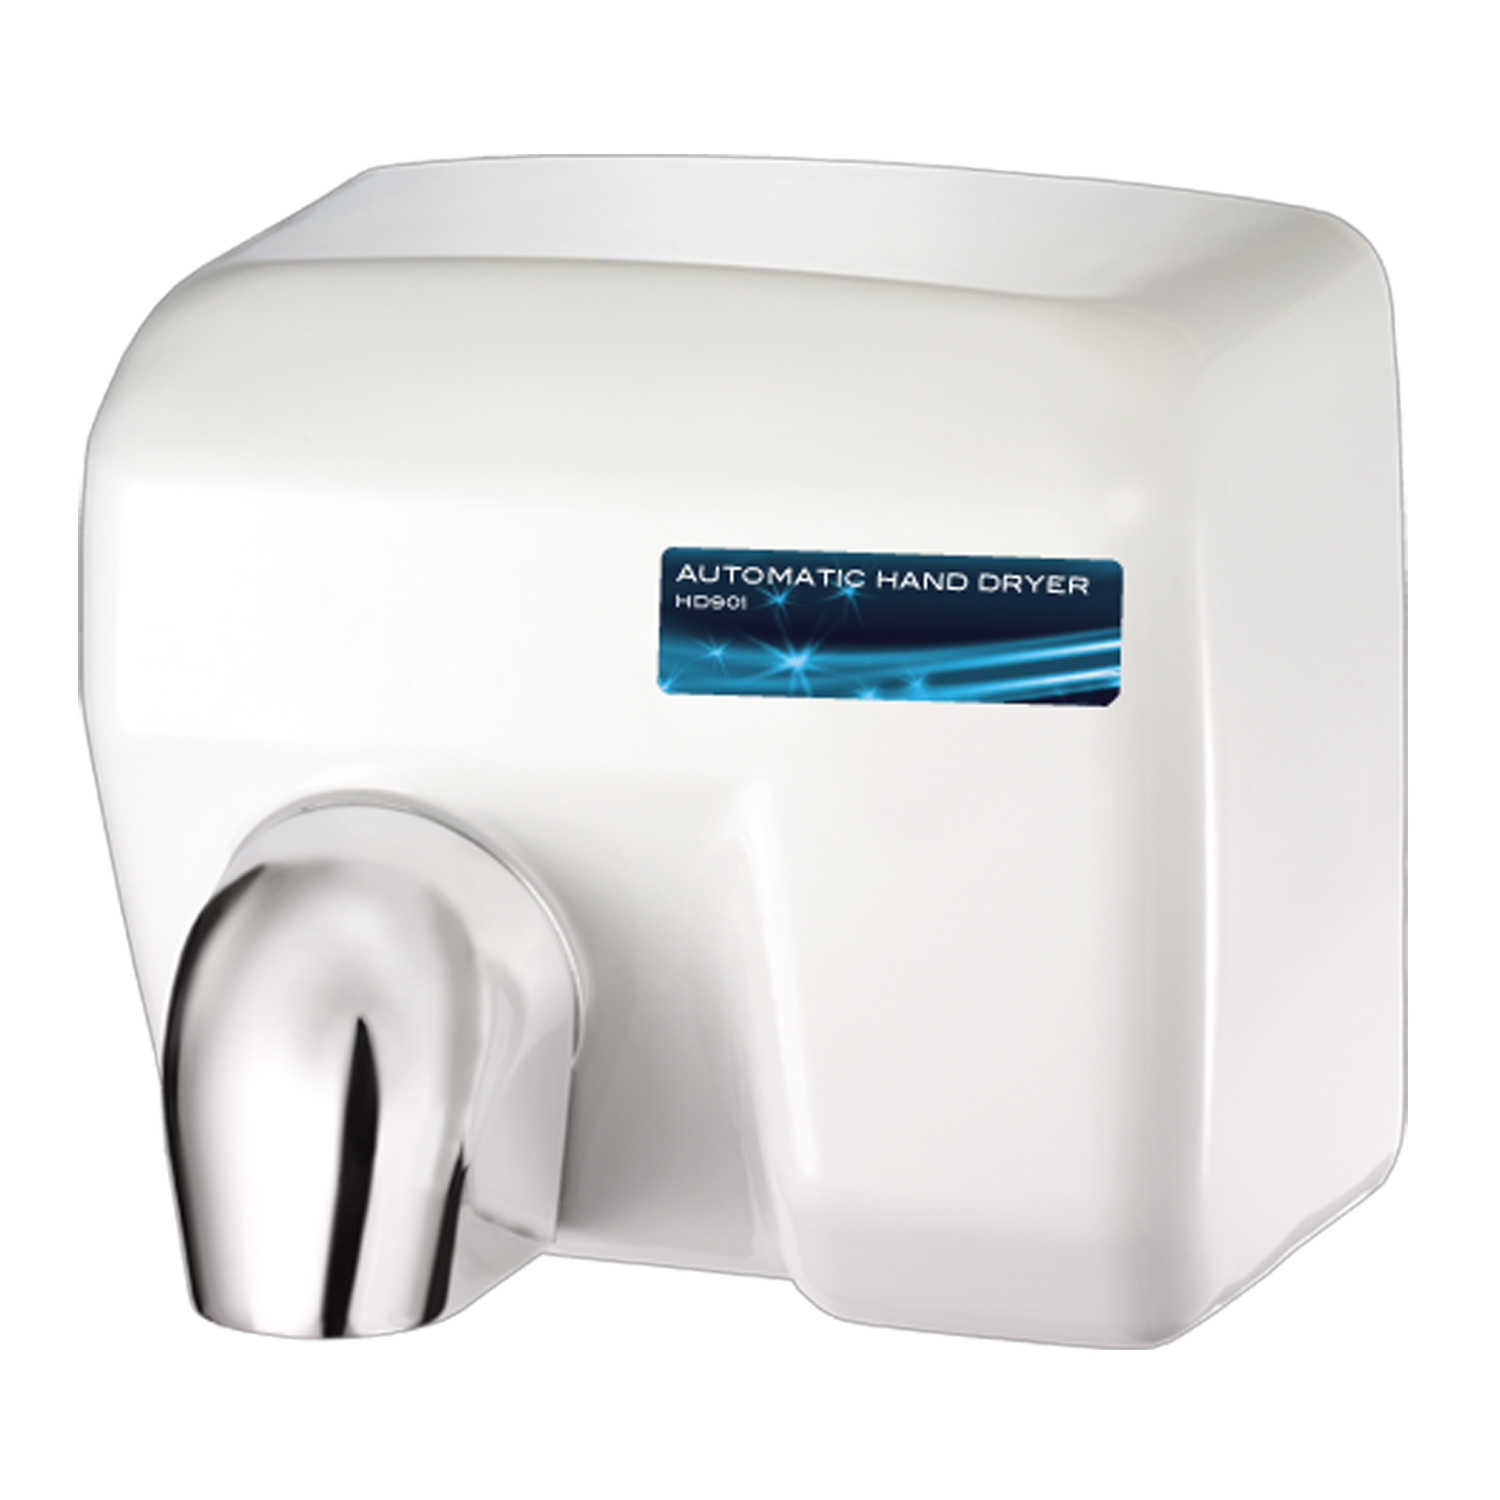 HAND DRYER CONVENTIONAL SERIES HAND DRYER WHITE